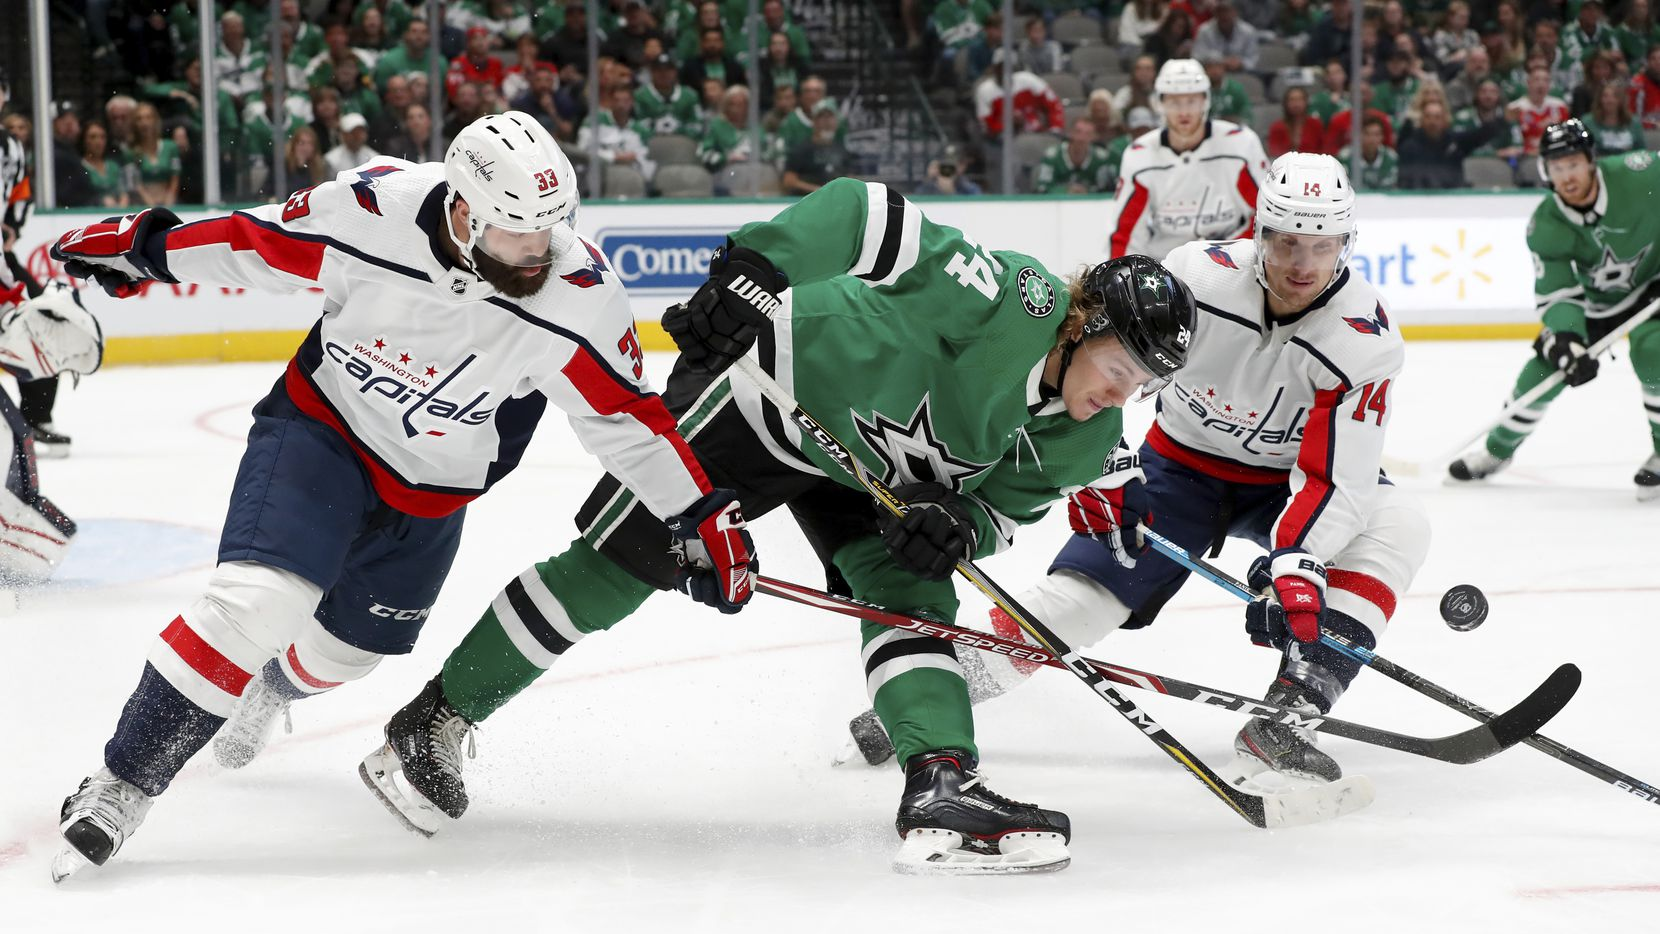 Washington Capitals defenseman Radko Gudas (33) and right wing Richard Panik (14) combine to strip the puck away from Dallas Stars left wing Roope Hintz (24) in the first period of an NHL hockey game in Dallas, Saturday, Oct. 12, 2019.